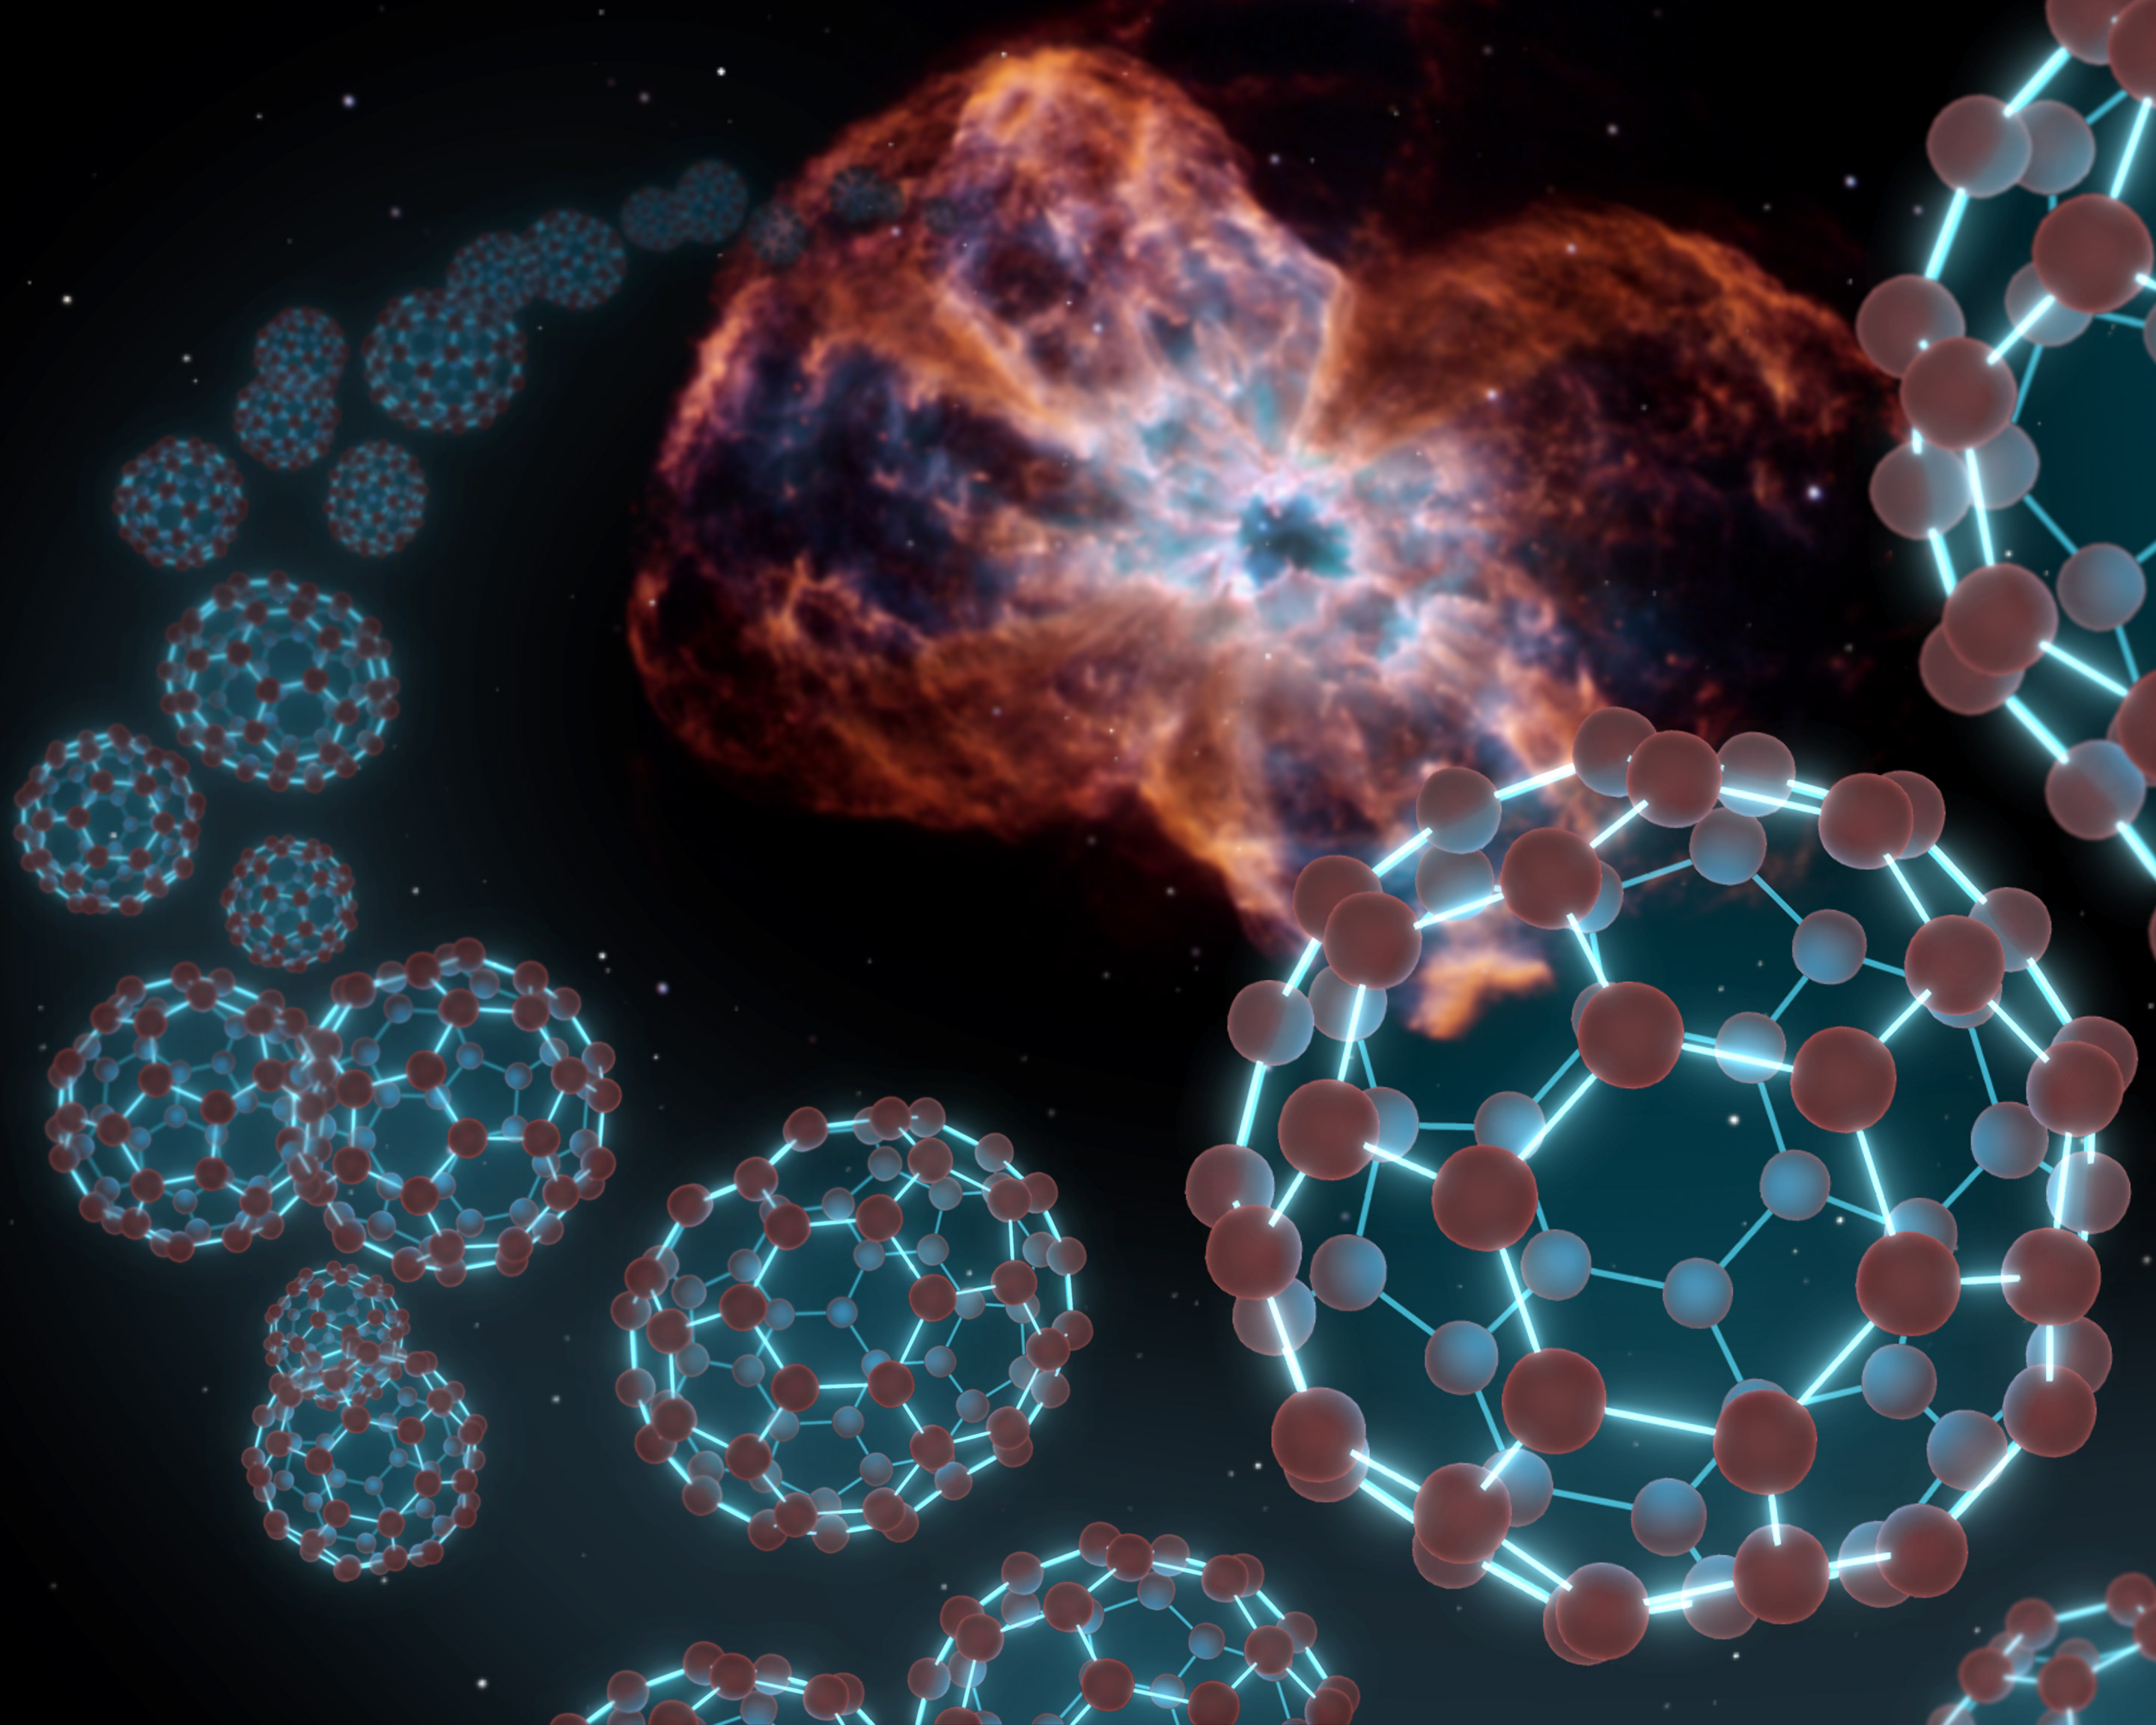 Spitzer has found buckyballs in space, as illustrated by this artist's conception showing the carbon balls coming out from the type of object where they were discovered - a dying star and the material it sheds, known as a planetary nebula. Image: NASA/JPL-Caltech/T. Pyle (SSC)